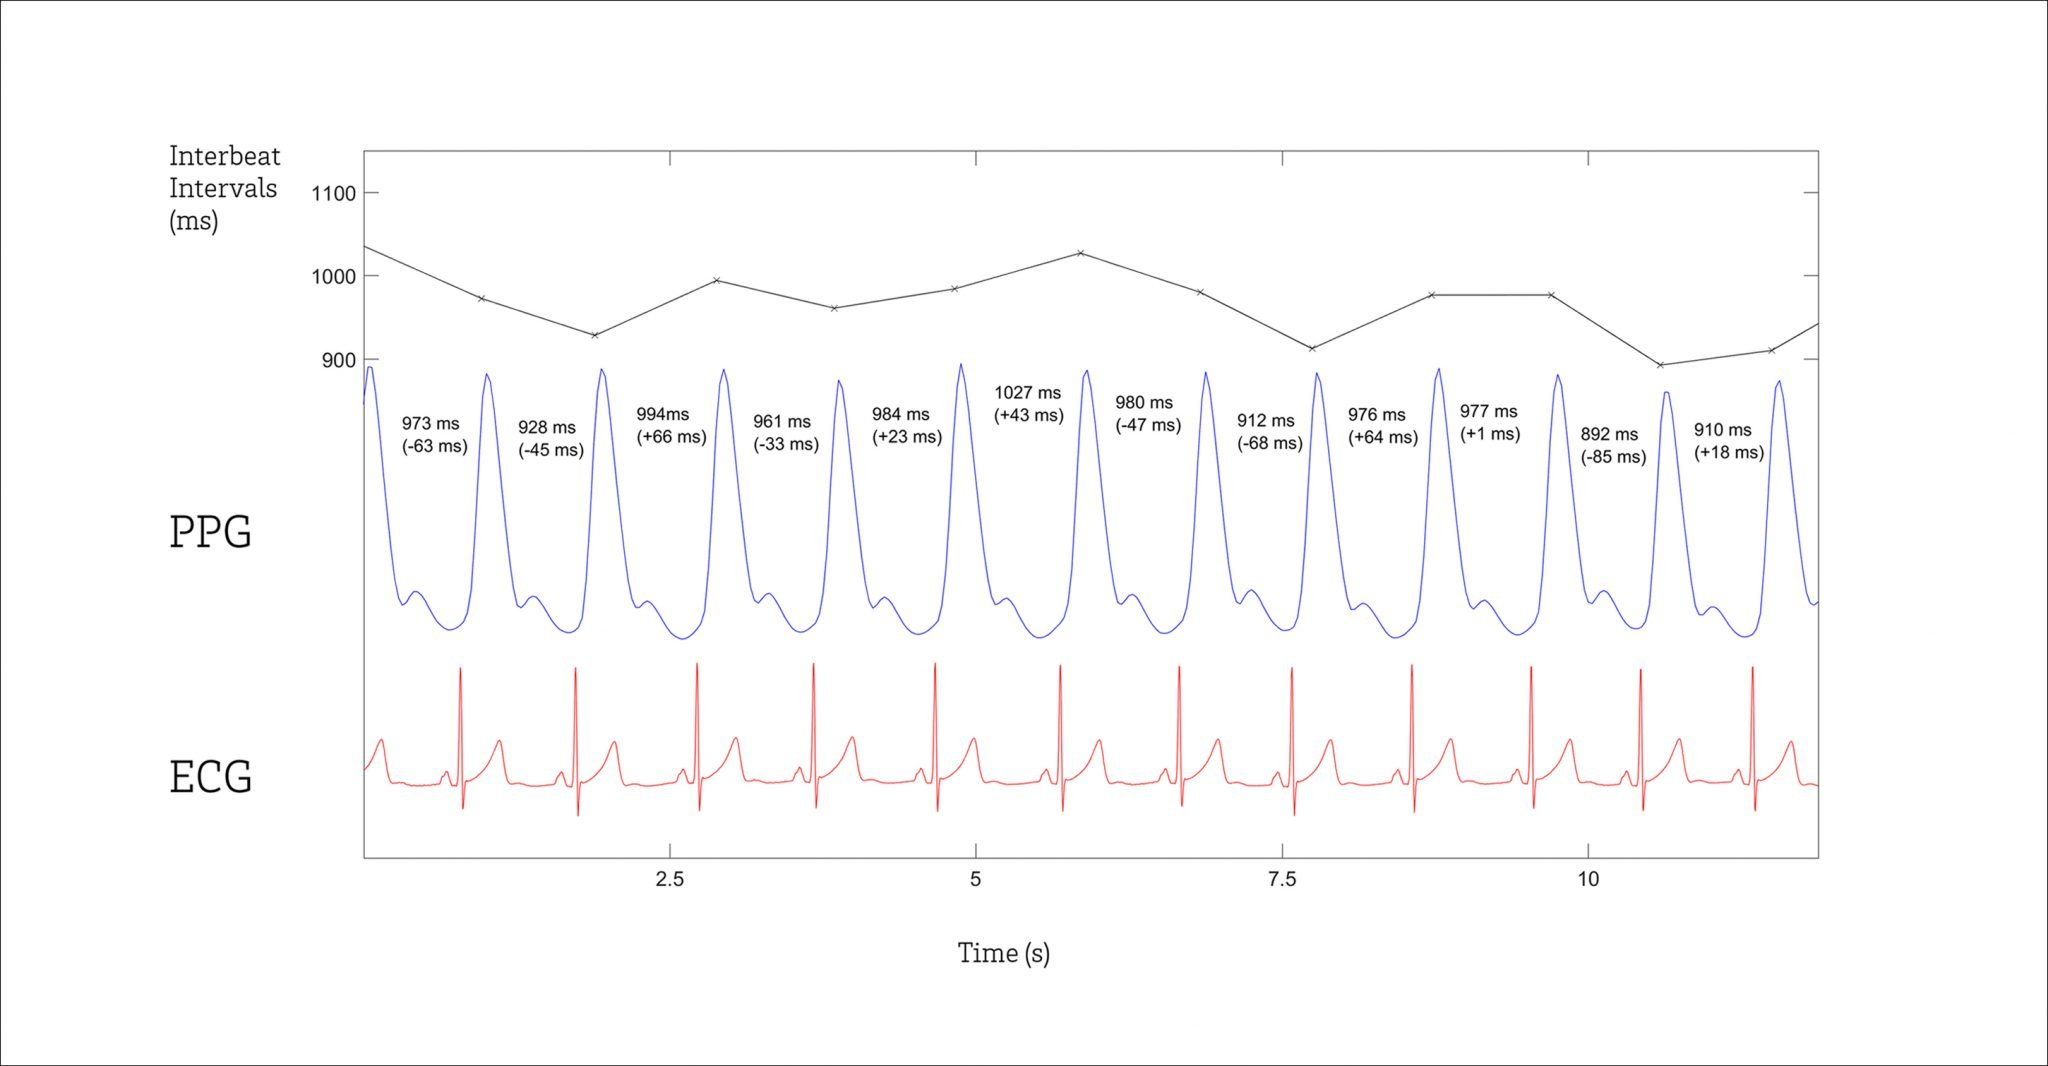 ECG, PPG and HRV graphs